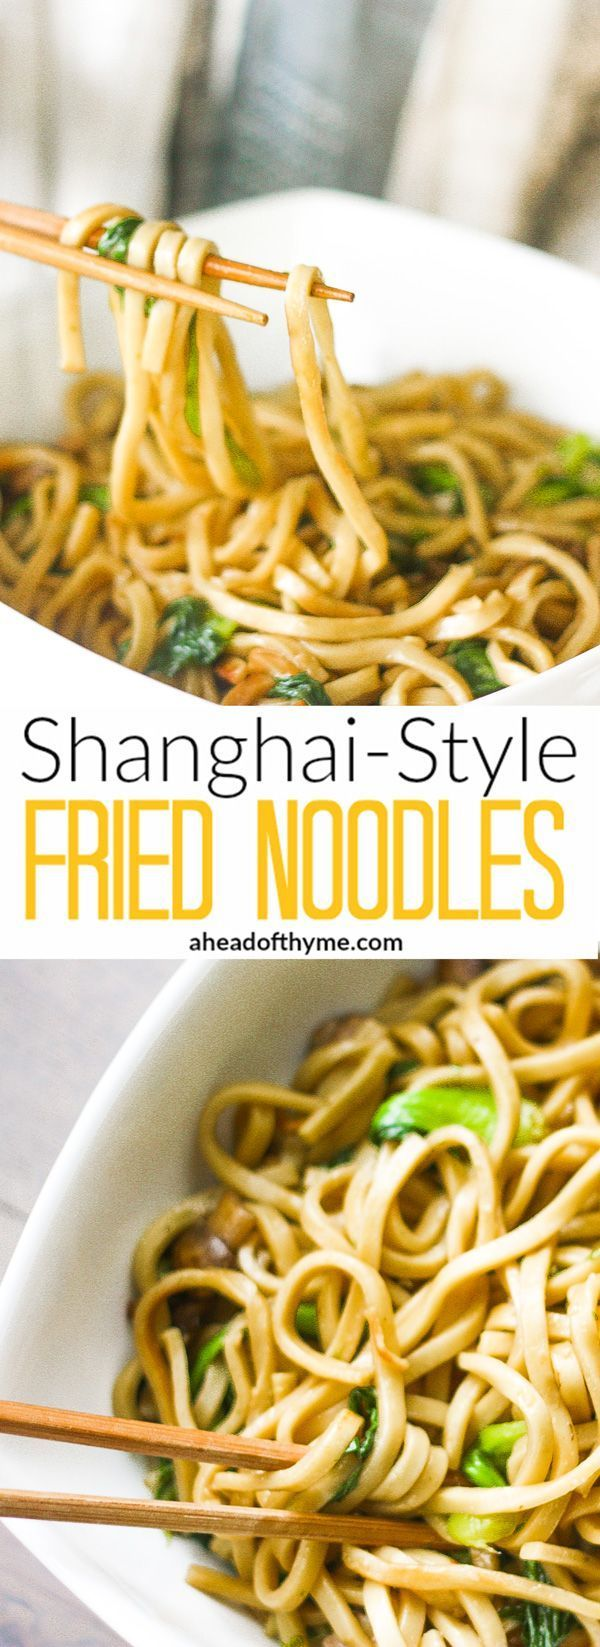 Shanghai-Style Fried Noodles: Forget take-out. Authentic and flavourful Shanghai noodles can easily be made in your own home. Try this classic Chinese comfort food tonight | http://aheadofthyme.com via /aheadofthyme/